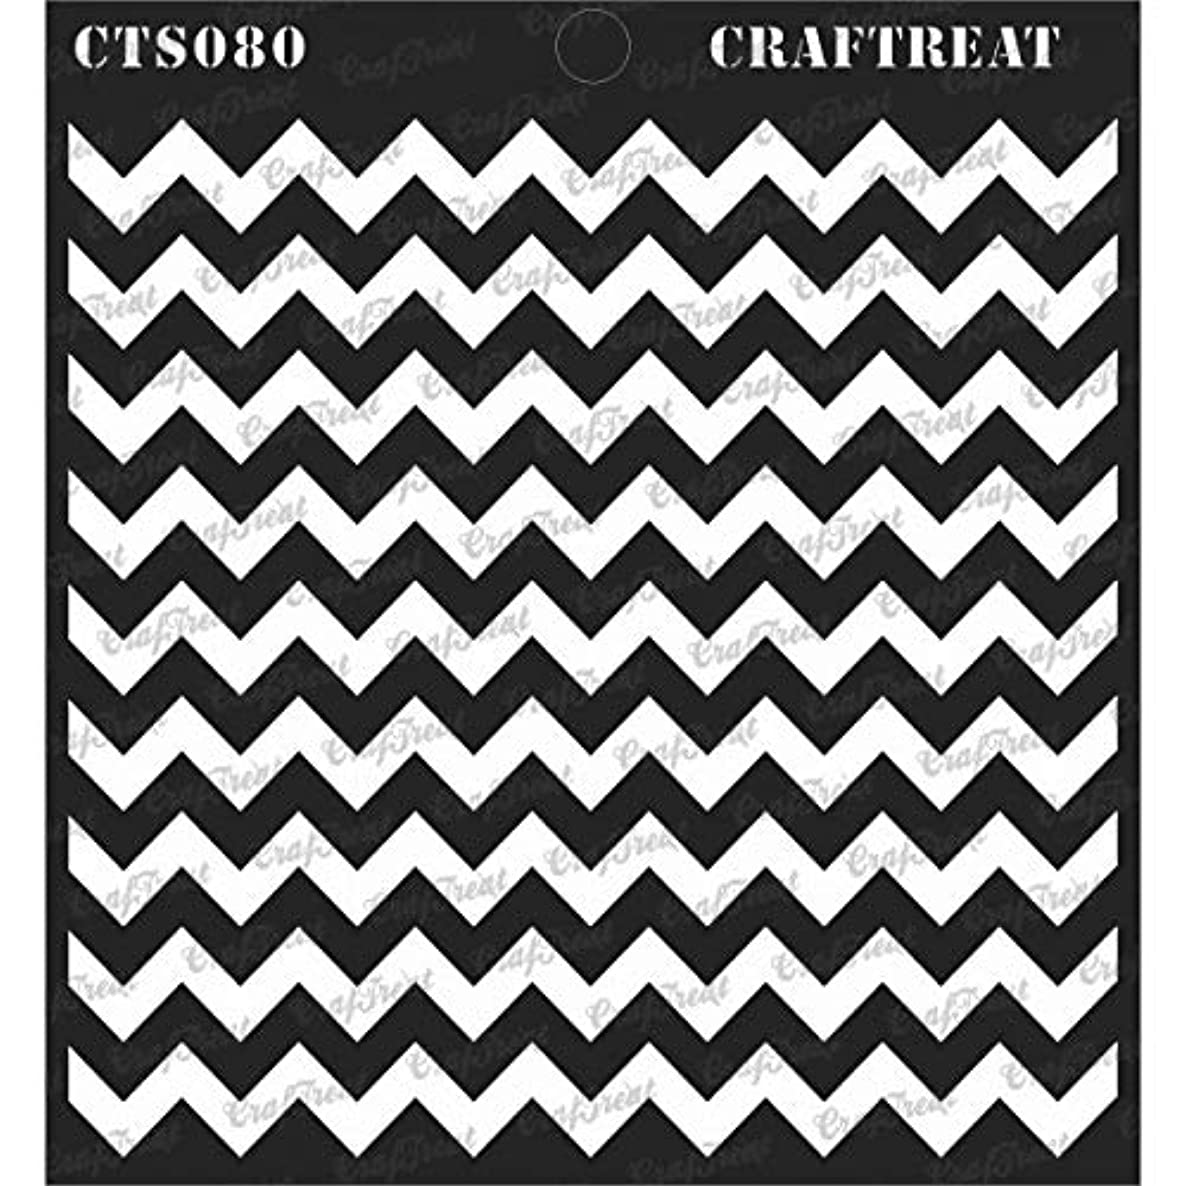 CrafTreat Stencil - Chevron | Reusable Painting Template for Journal, Notebook, Home Decor, Crafting, DIY Albums, Scrapbook and Printing on Paper, Floor, Wall, Tile, Fabric, Wood 6